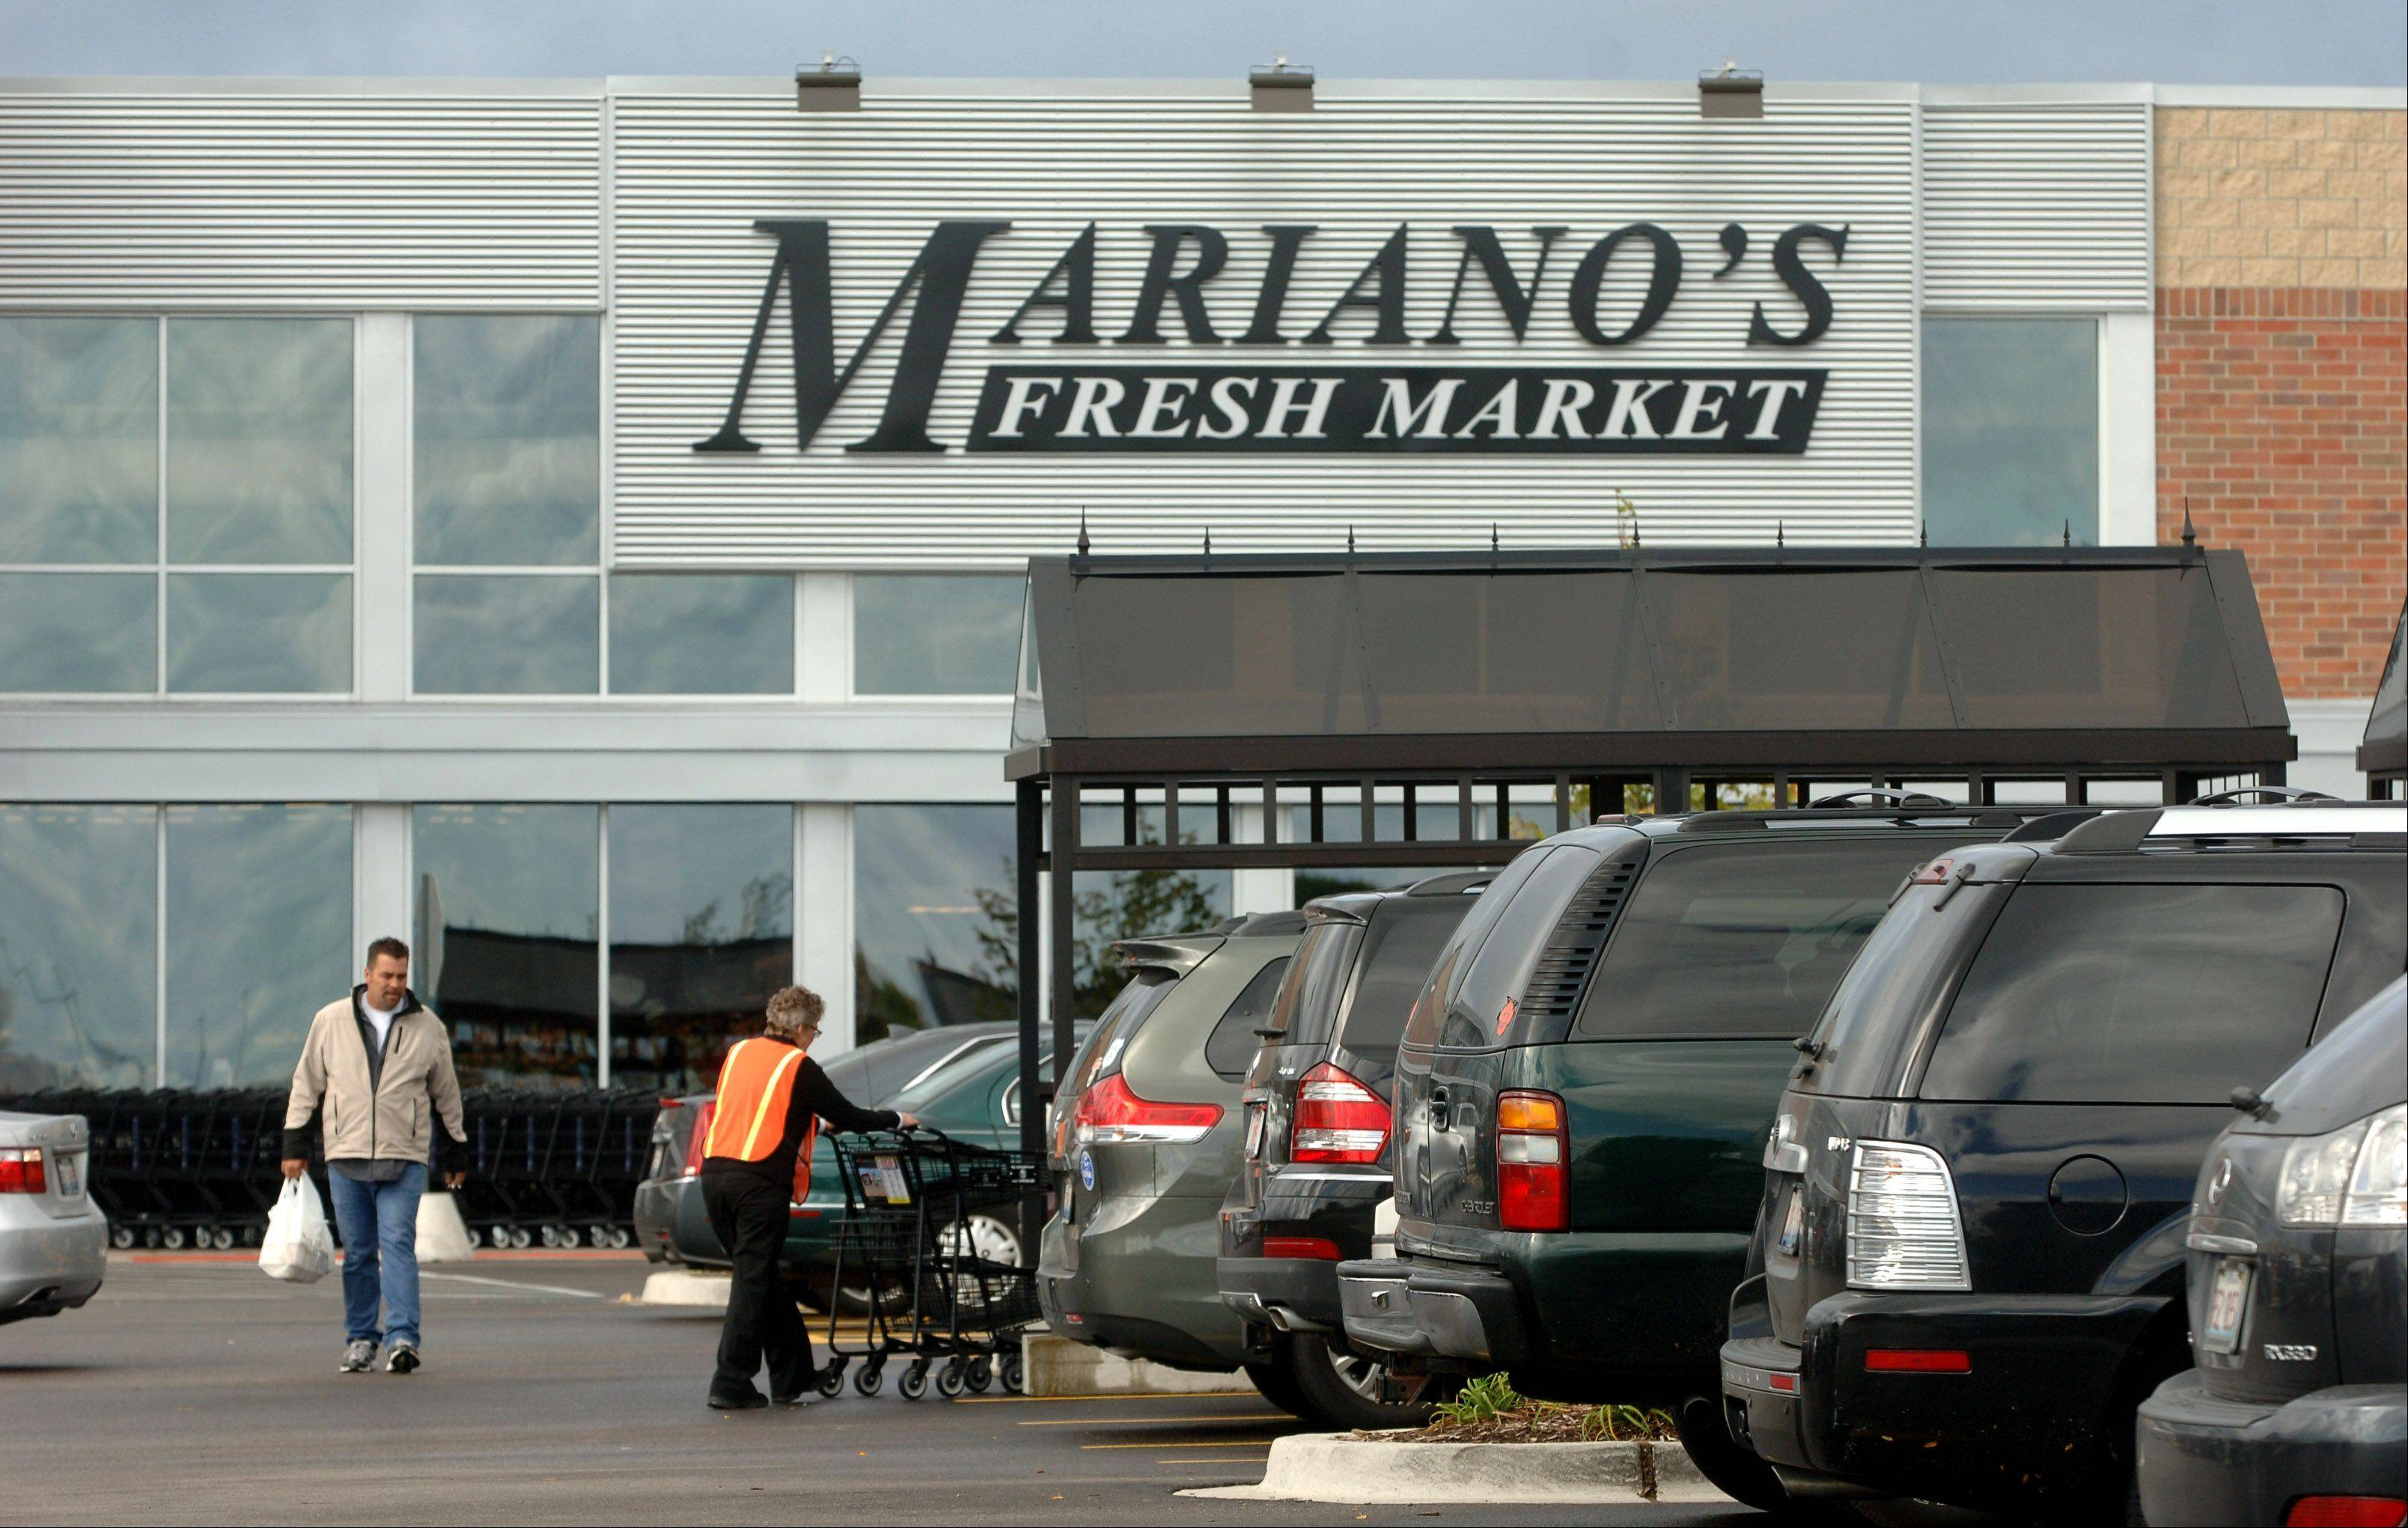 Until late fall, the parking lot at the Mariano's Fresh Market in Vernon Hills was so packed every day that employees were shuttled to the store from remote lots.